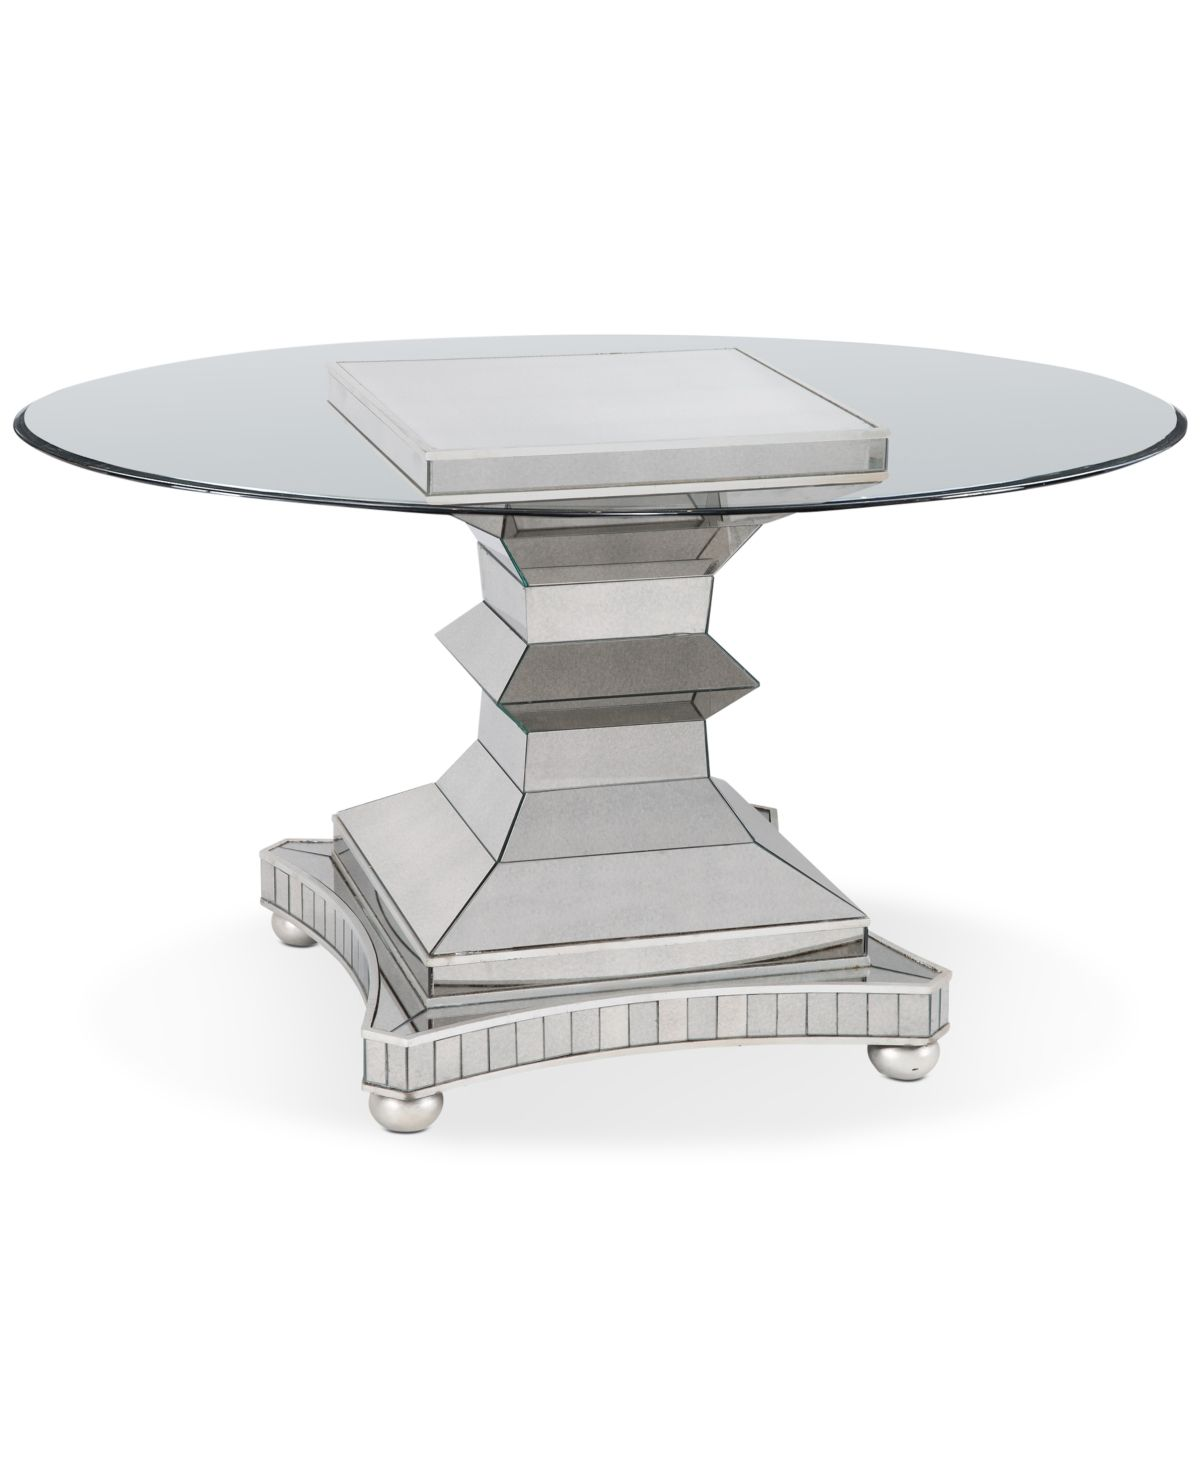 Moiselle 54 Round Dining Table Antique Mirror Glass 60 Round Dining Table Round Dining Table